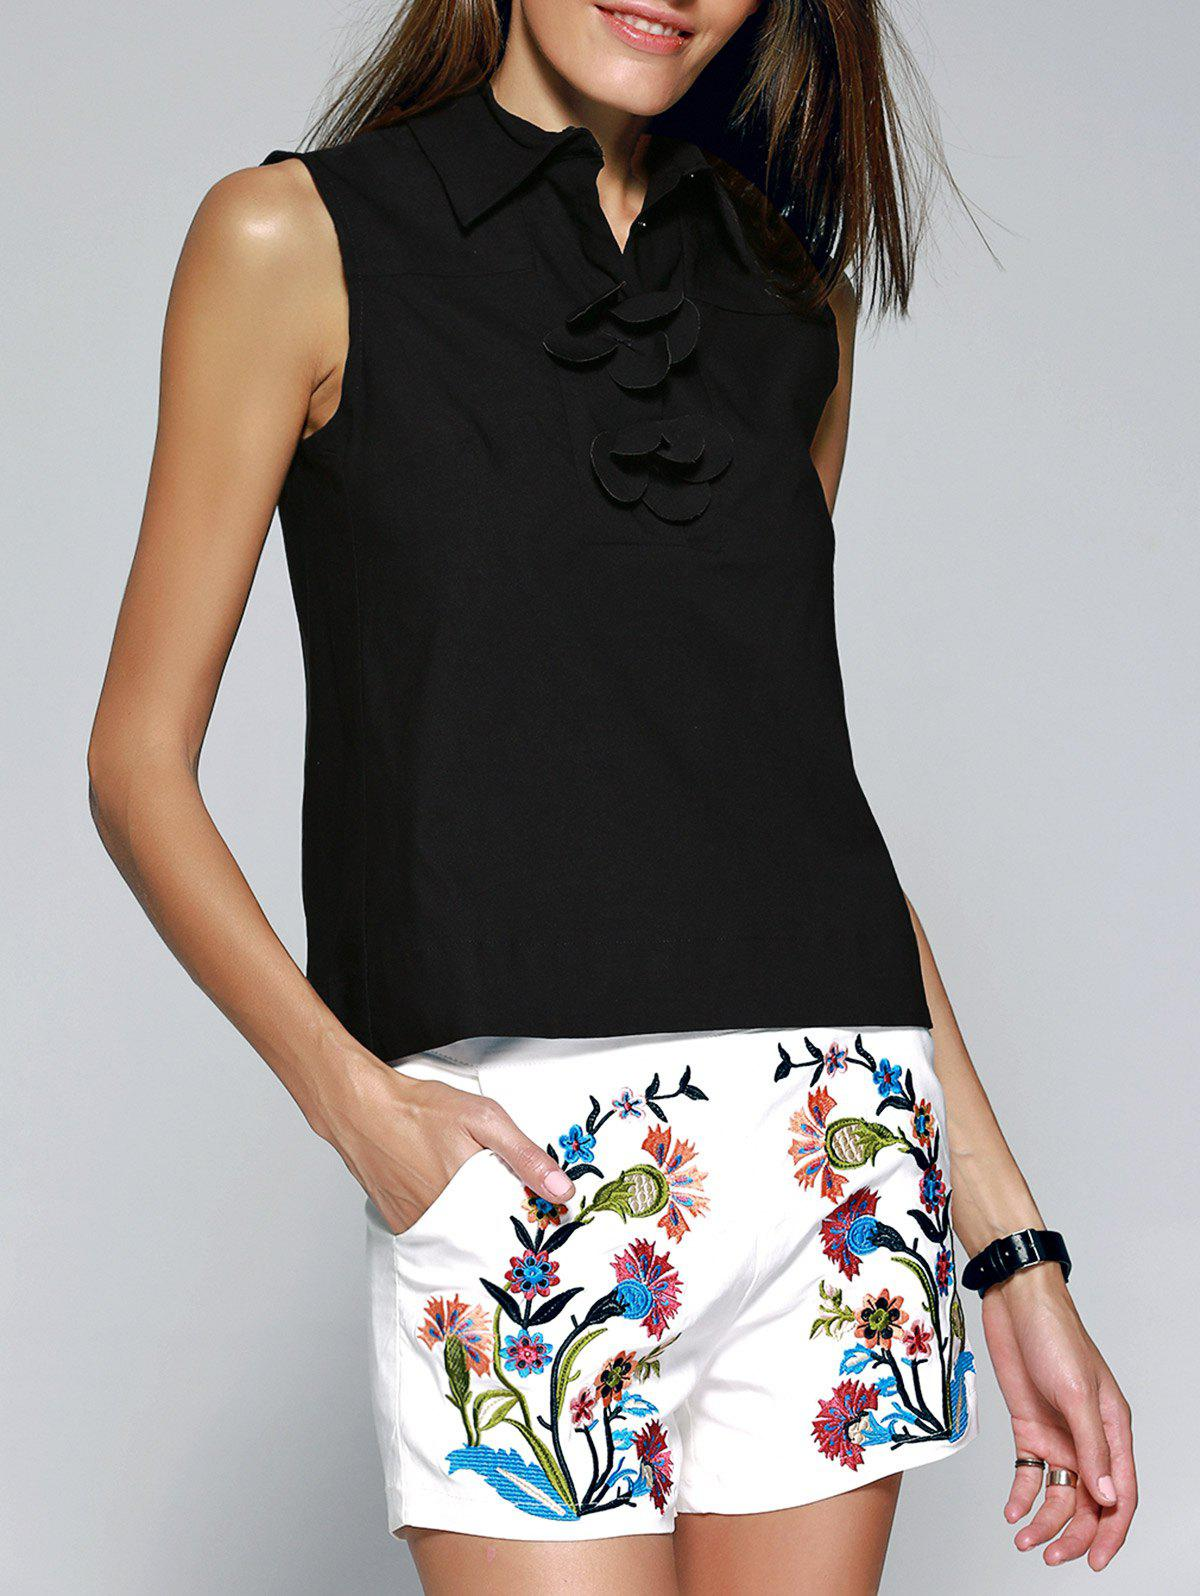 Flower Embellished Blouse + Embroidered Shorts Twinset